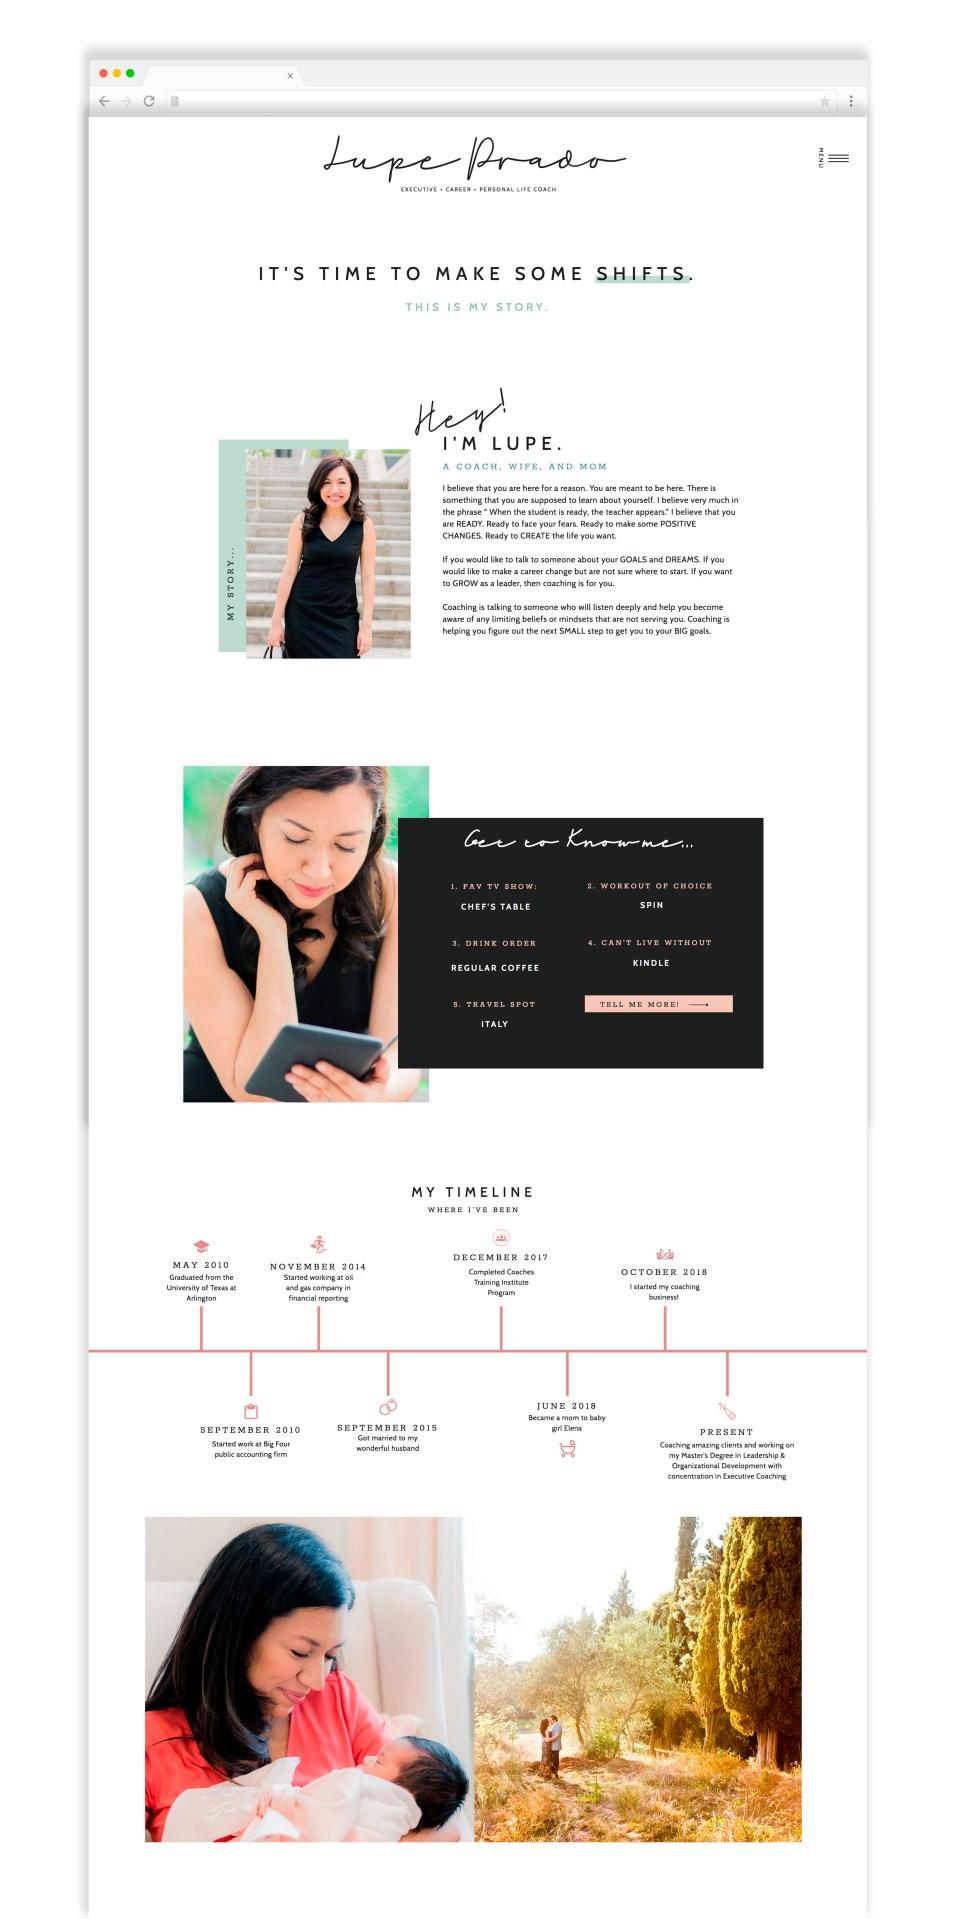 Beautiful about page example for life coaches and personal brand based businesses.